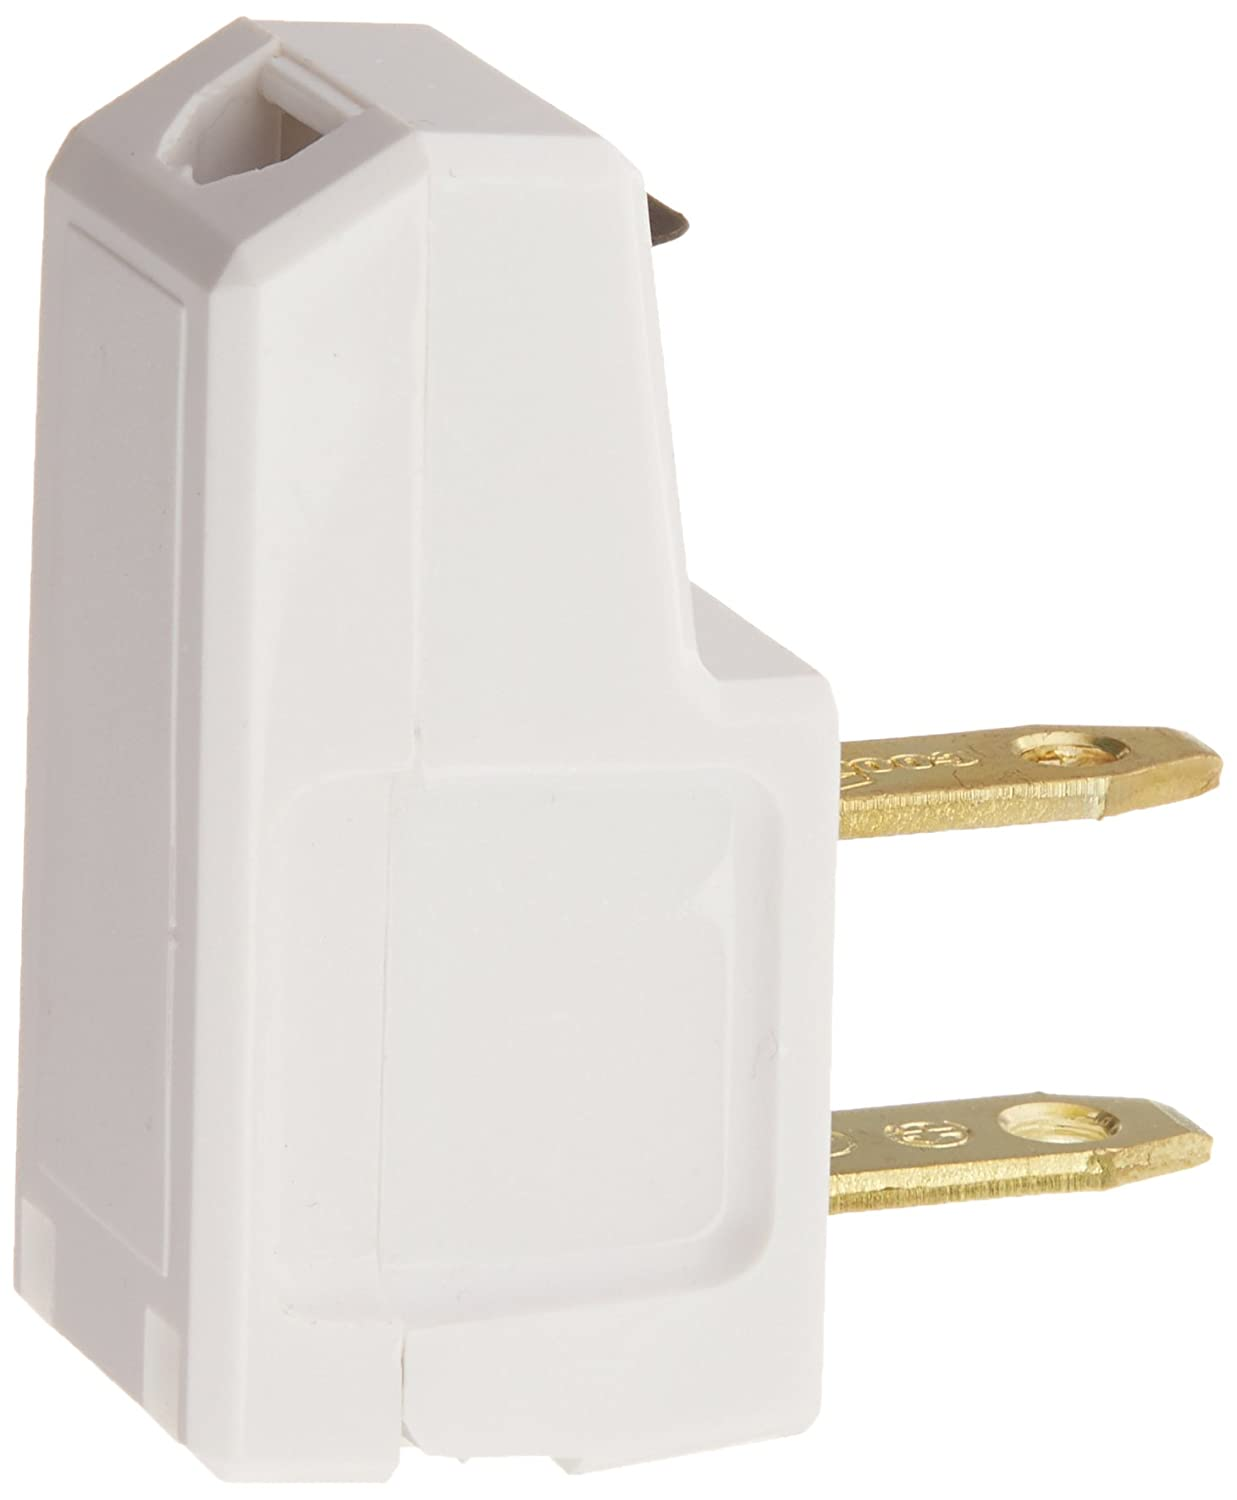 Pass Seymour 2600wbpcc10 Right Angle Quick Attach Plug 125v 15 Knife Switch Fuse Box Residential Amp White Electric Plugs